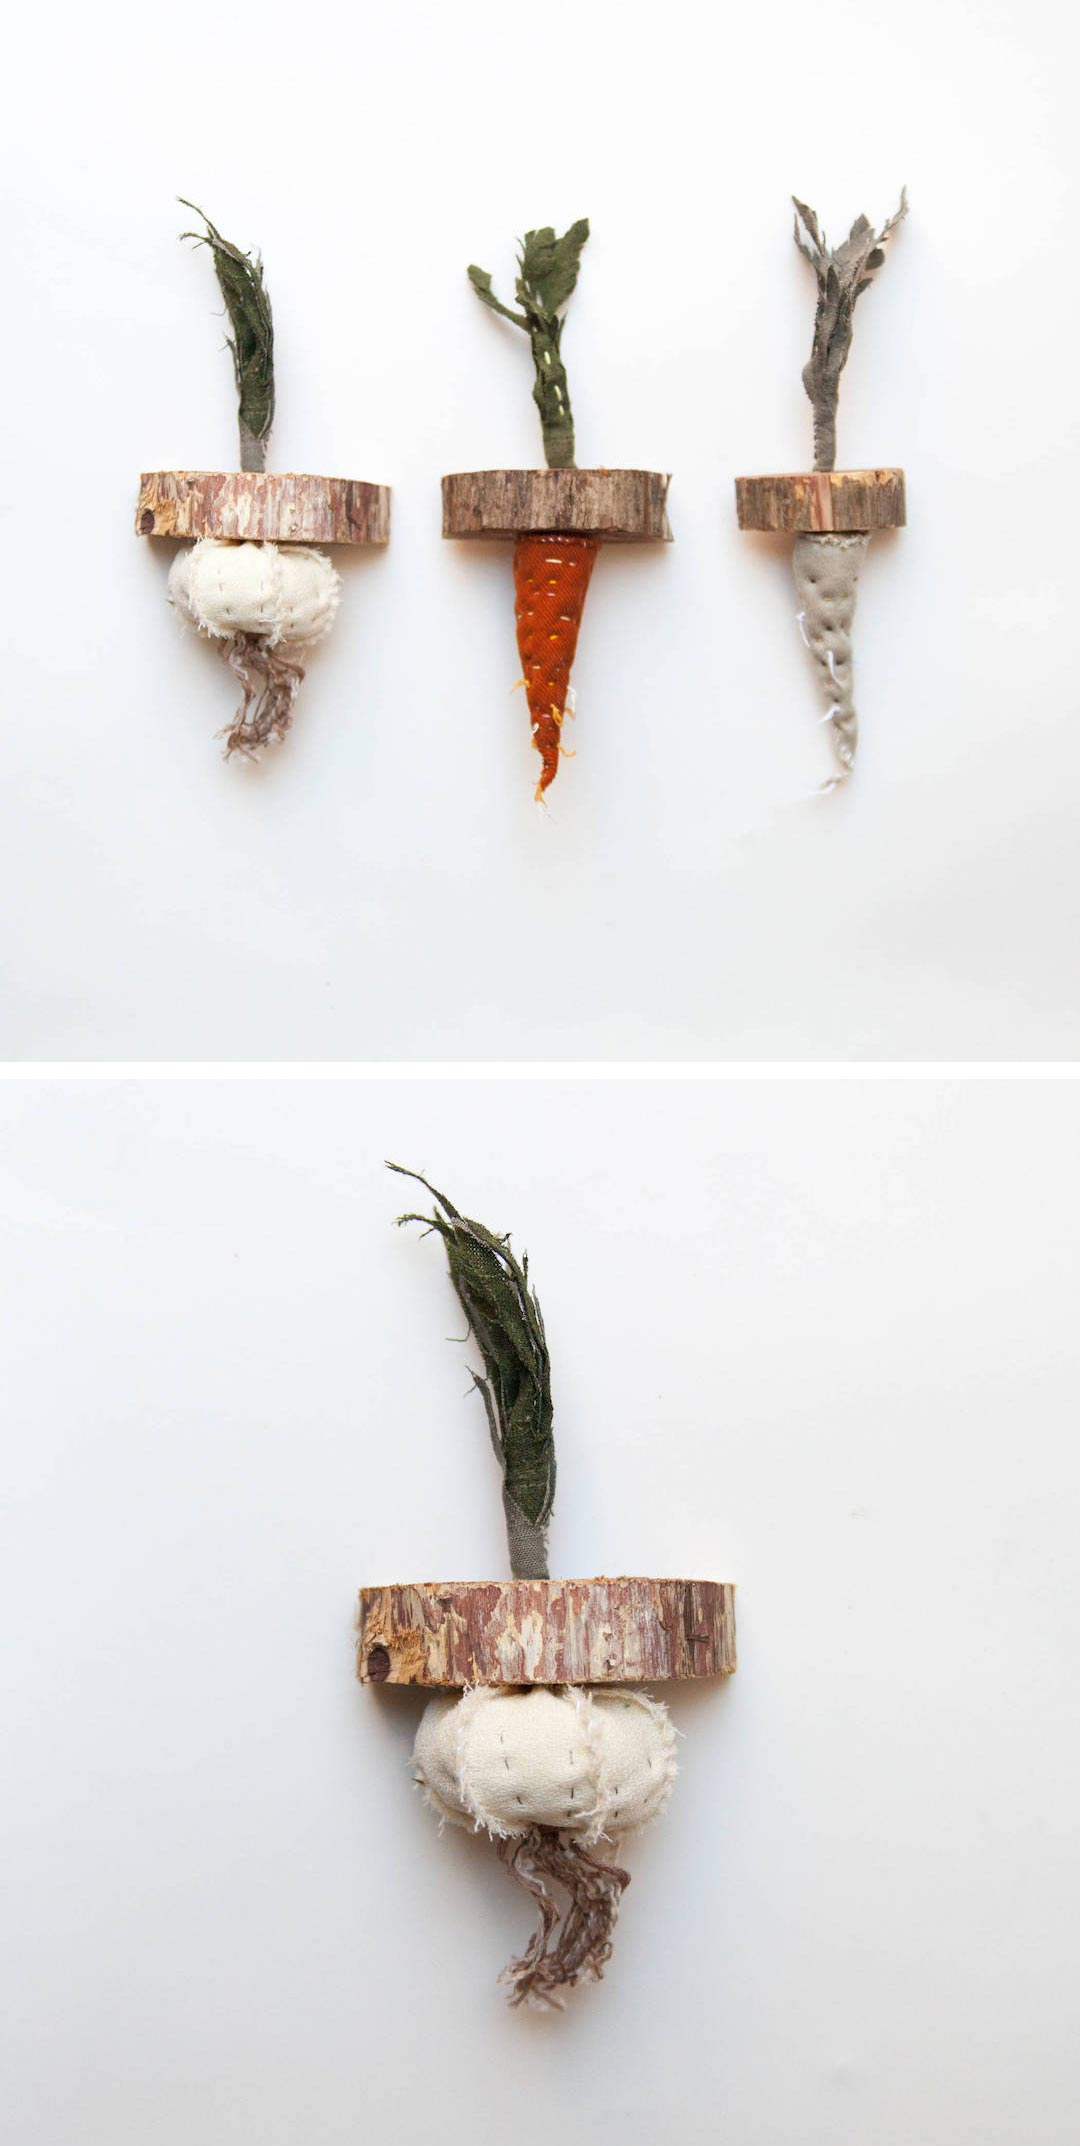 Felt crafts by Close Call Studio